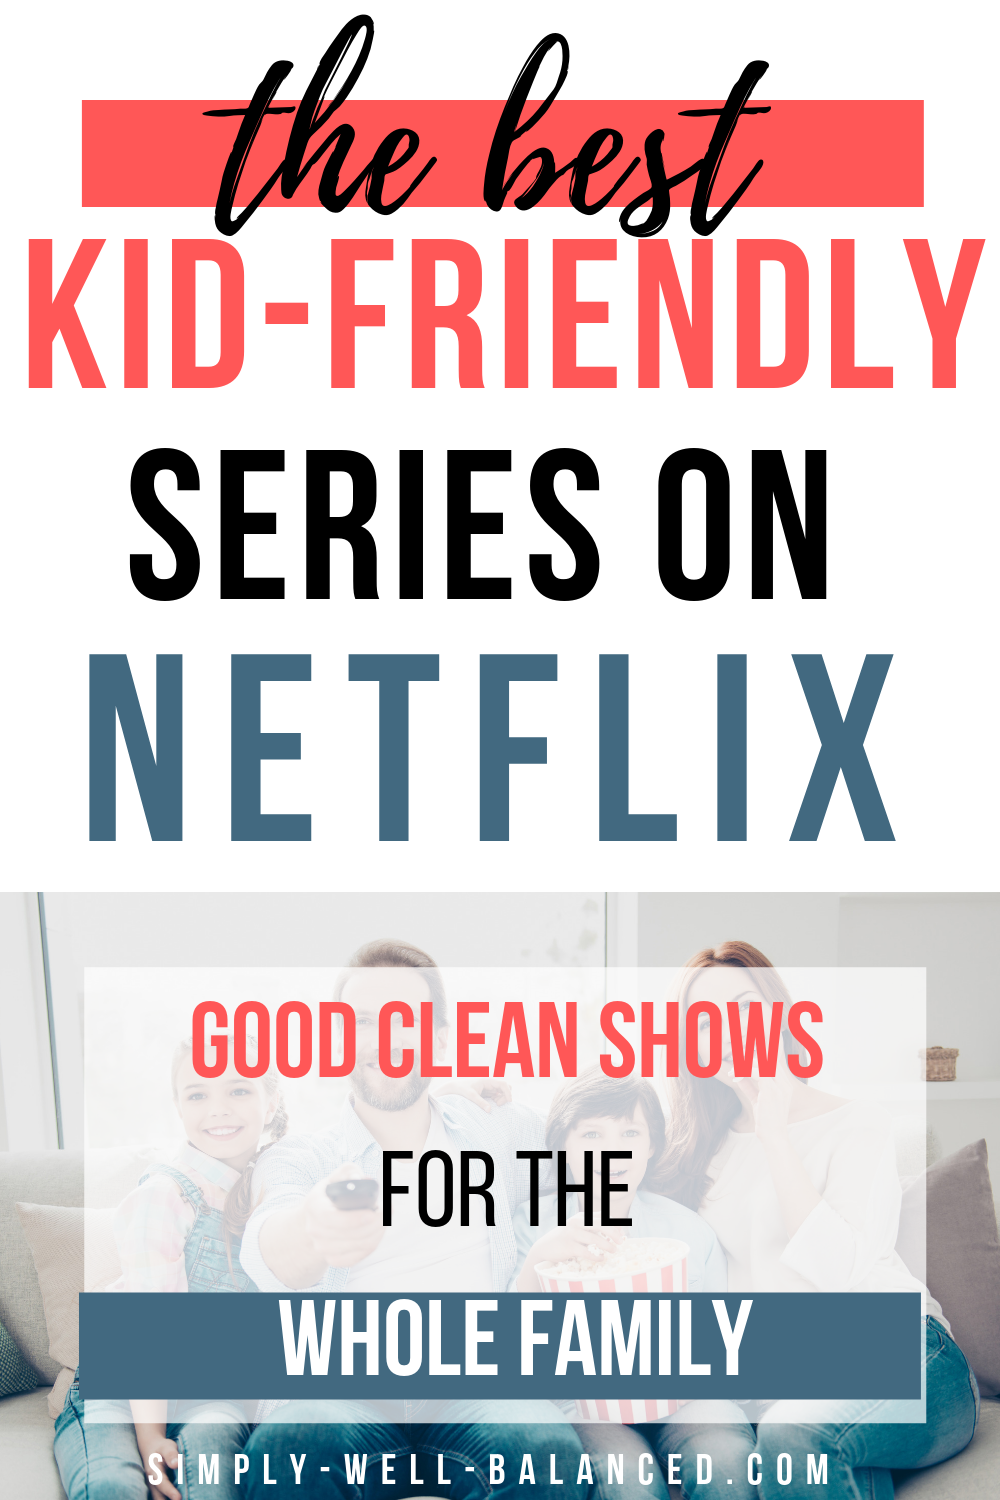 Good Clean Shows on Netflix to Watch as a Family #seriesonnetflix